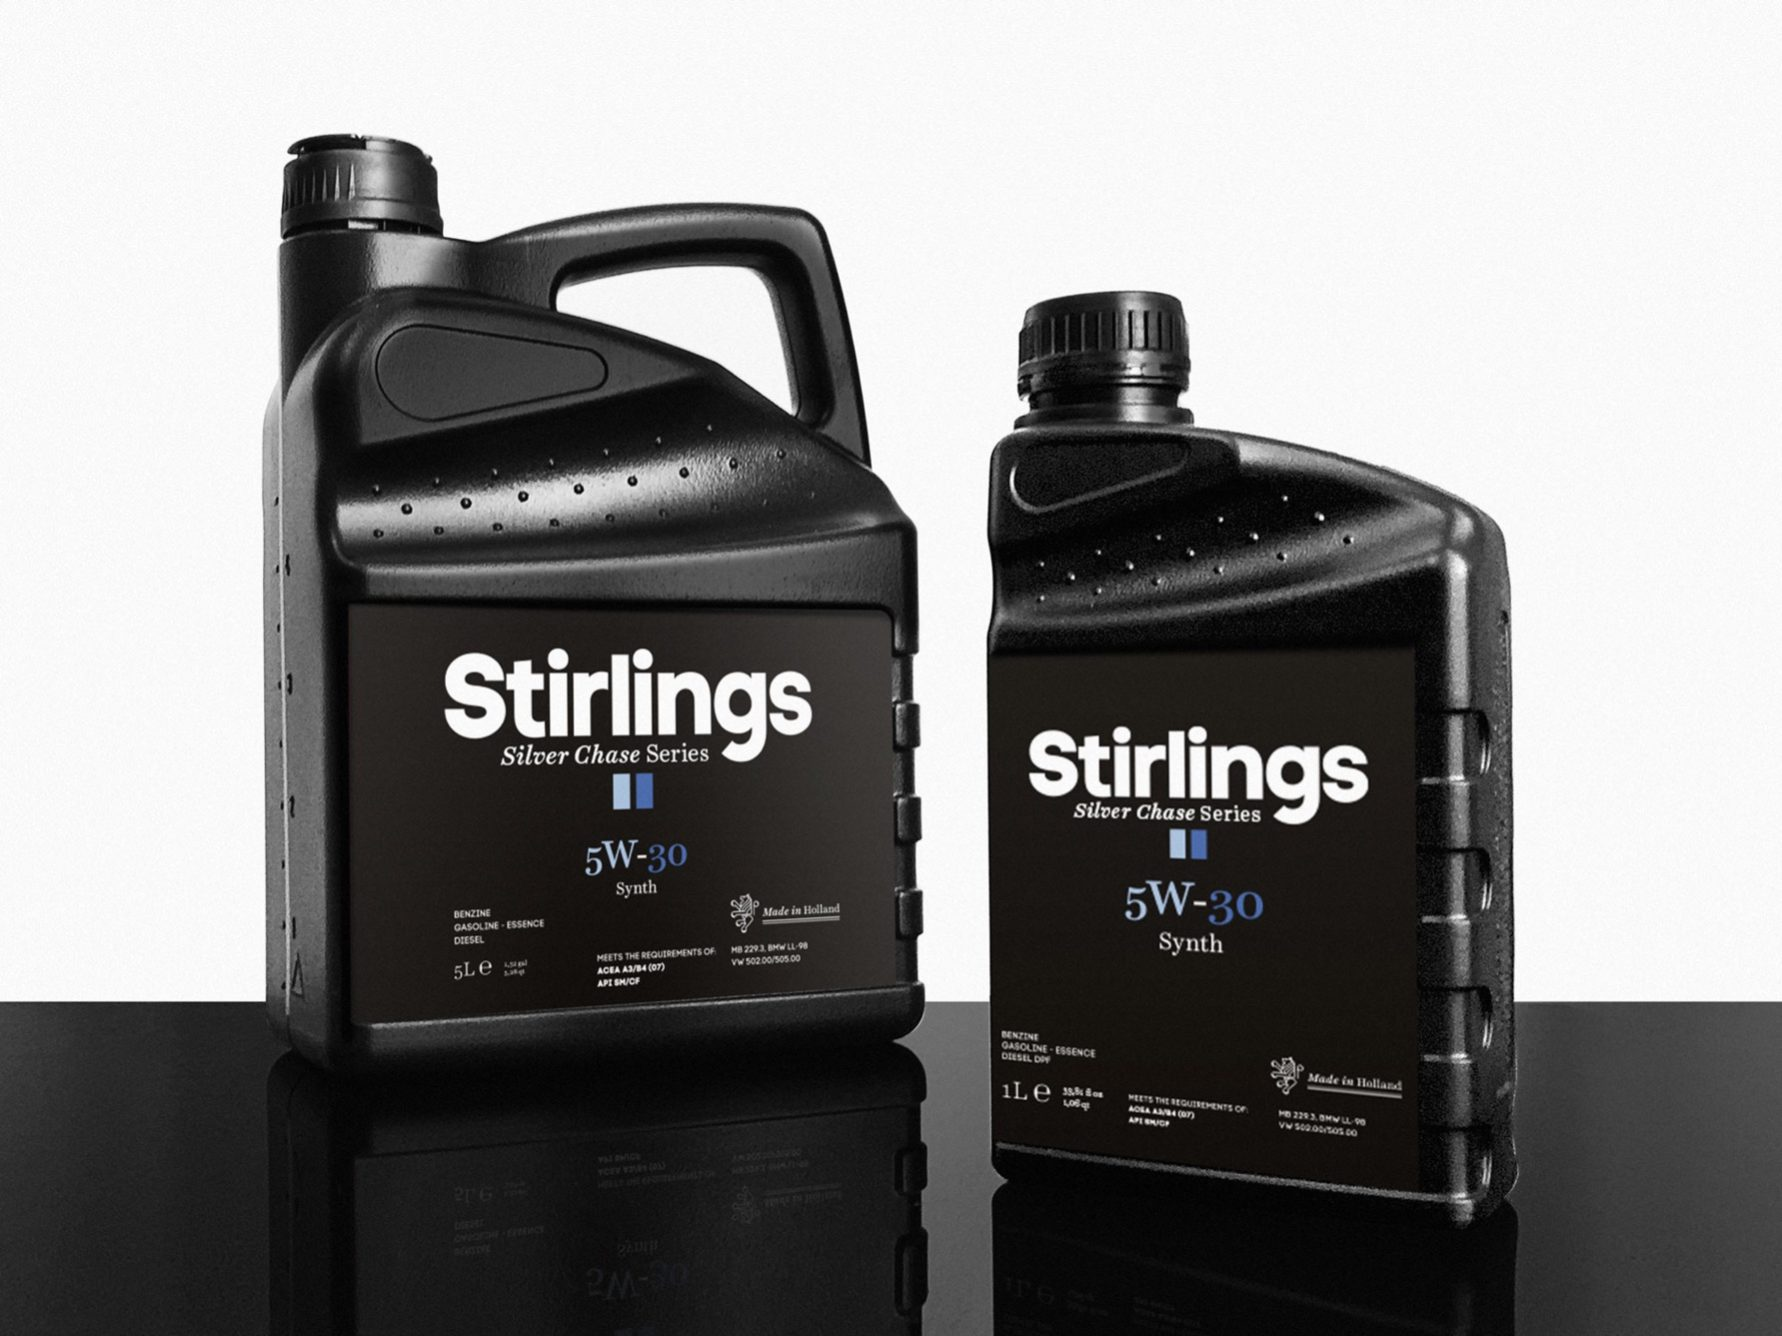 5w30 Synthetische Olie 5 Liter 5w30 Stirlings Oil Vol Synthetisch Prowheels